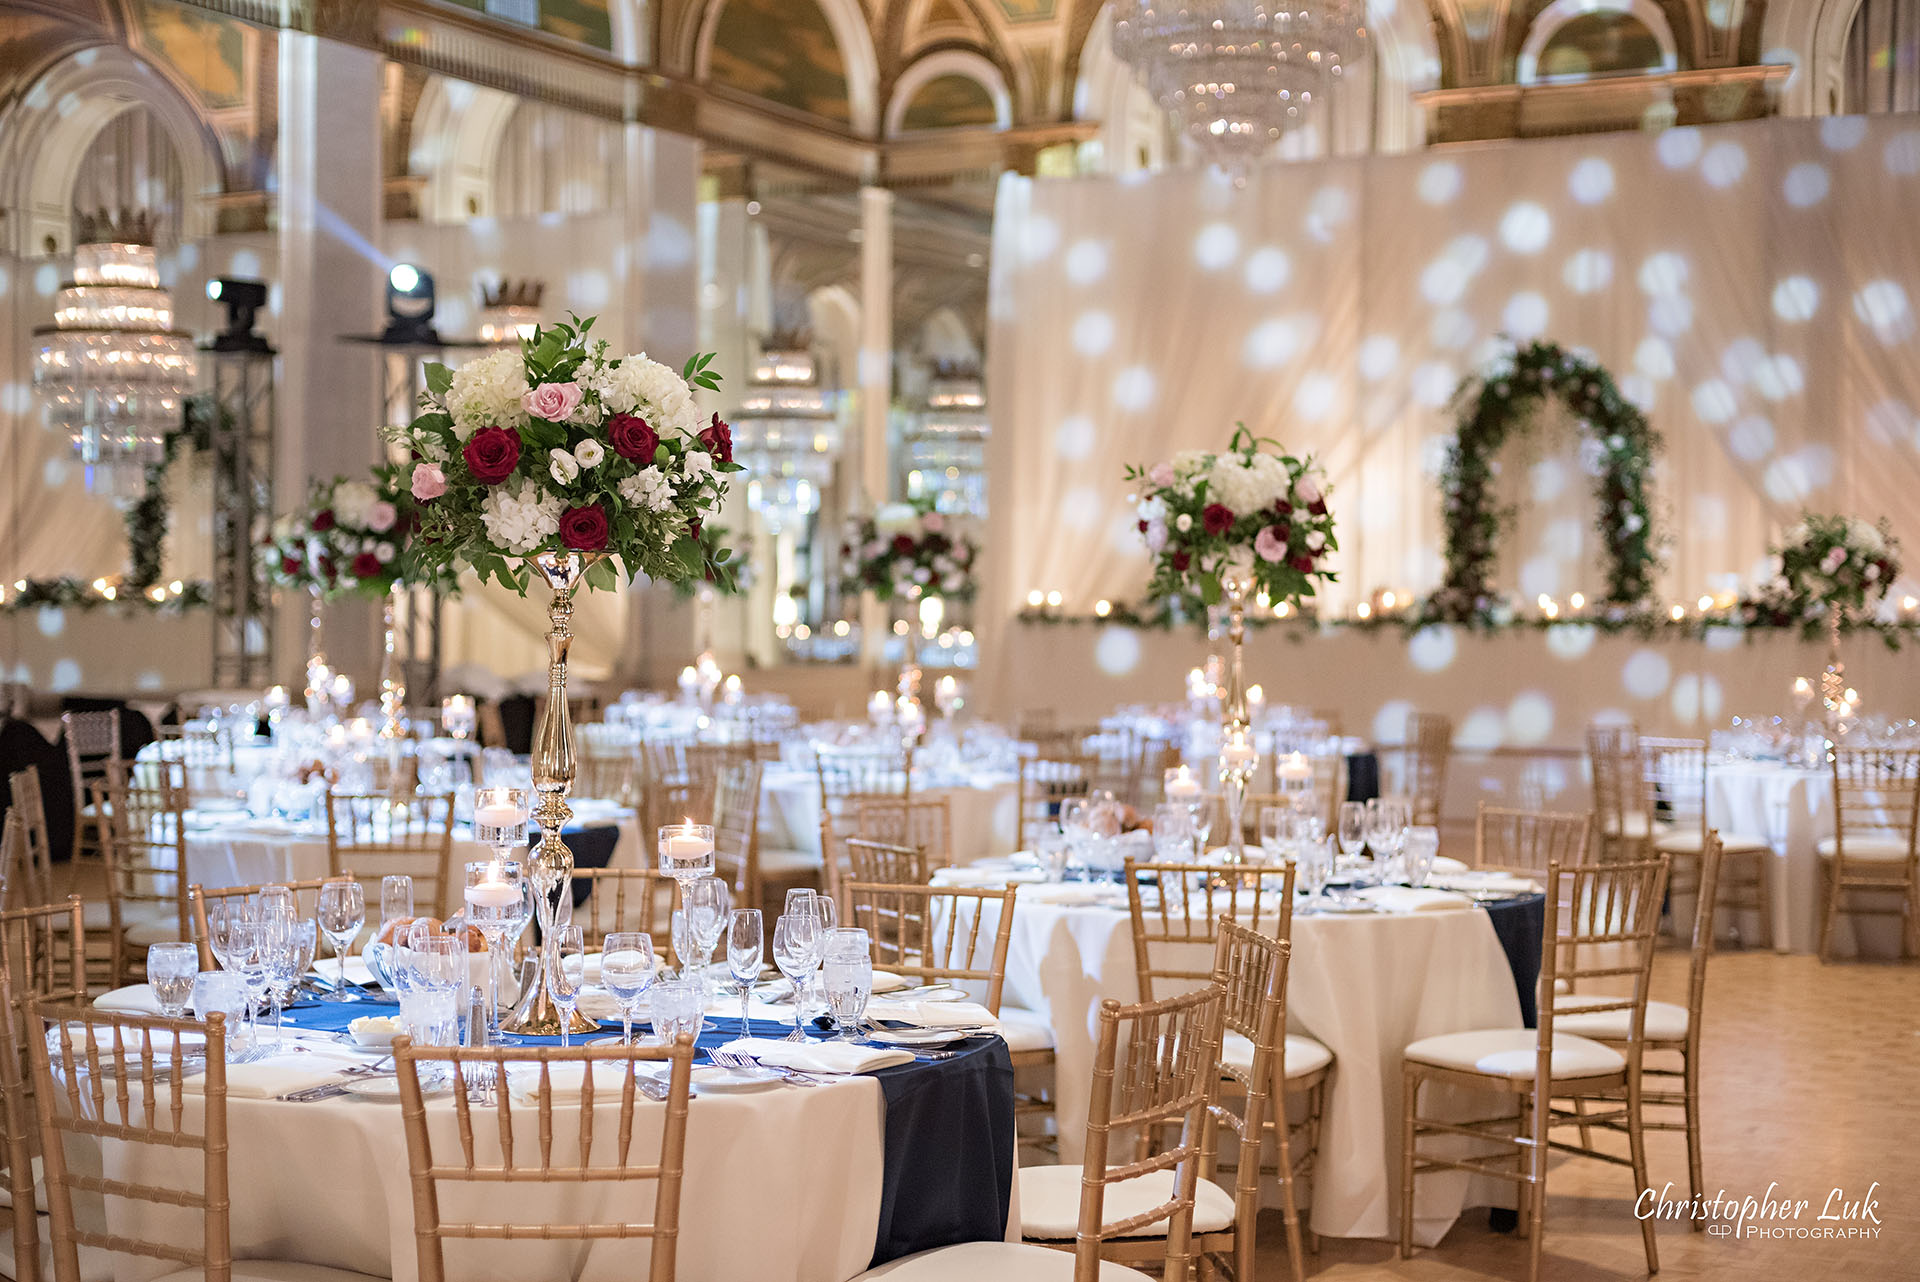 Toronto Fairmont Royal York Hotel Wedding Christopher Luk Photographer Photography Crystal Chandelier Ballroom Dinner Reception Setup Vinyl Floor Floral Arch Social Rose Aisle Dance Floor Decor Chiavari Chairs